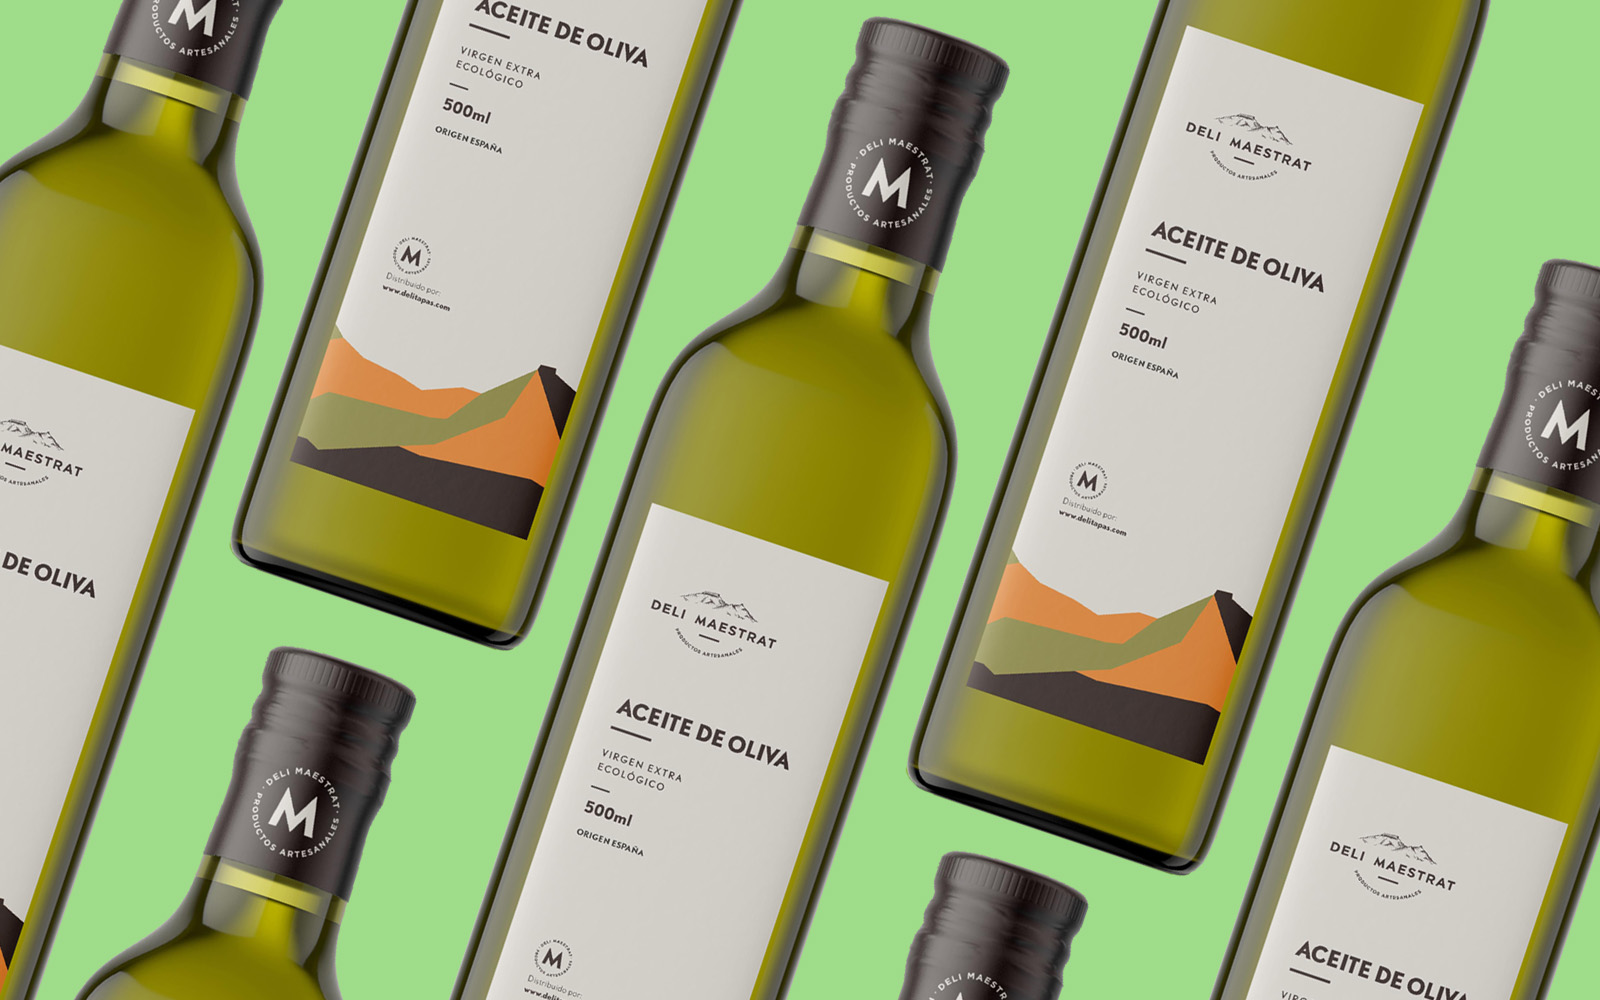 Pistacho Studio Creates a New Labels Design for Deli Maestrat